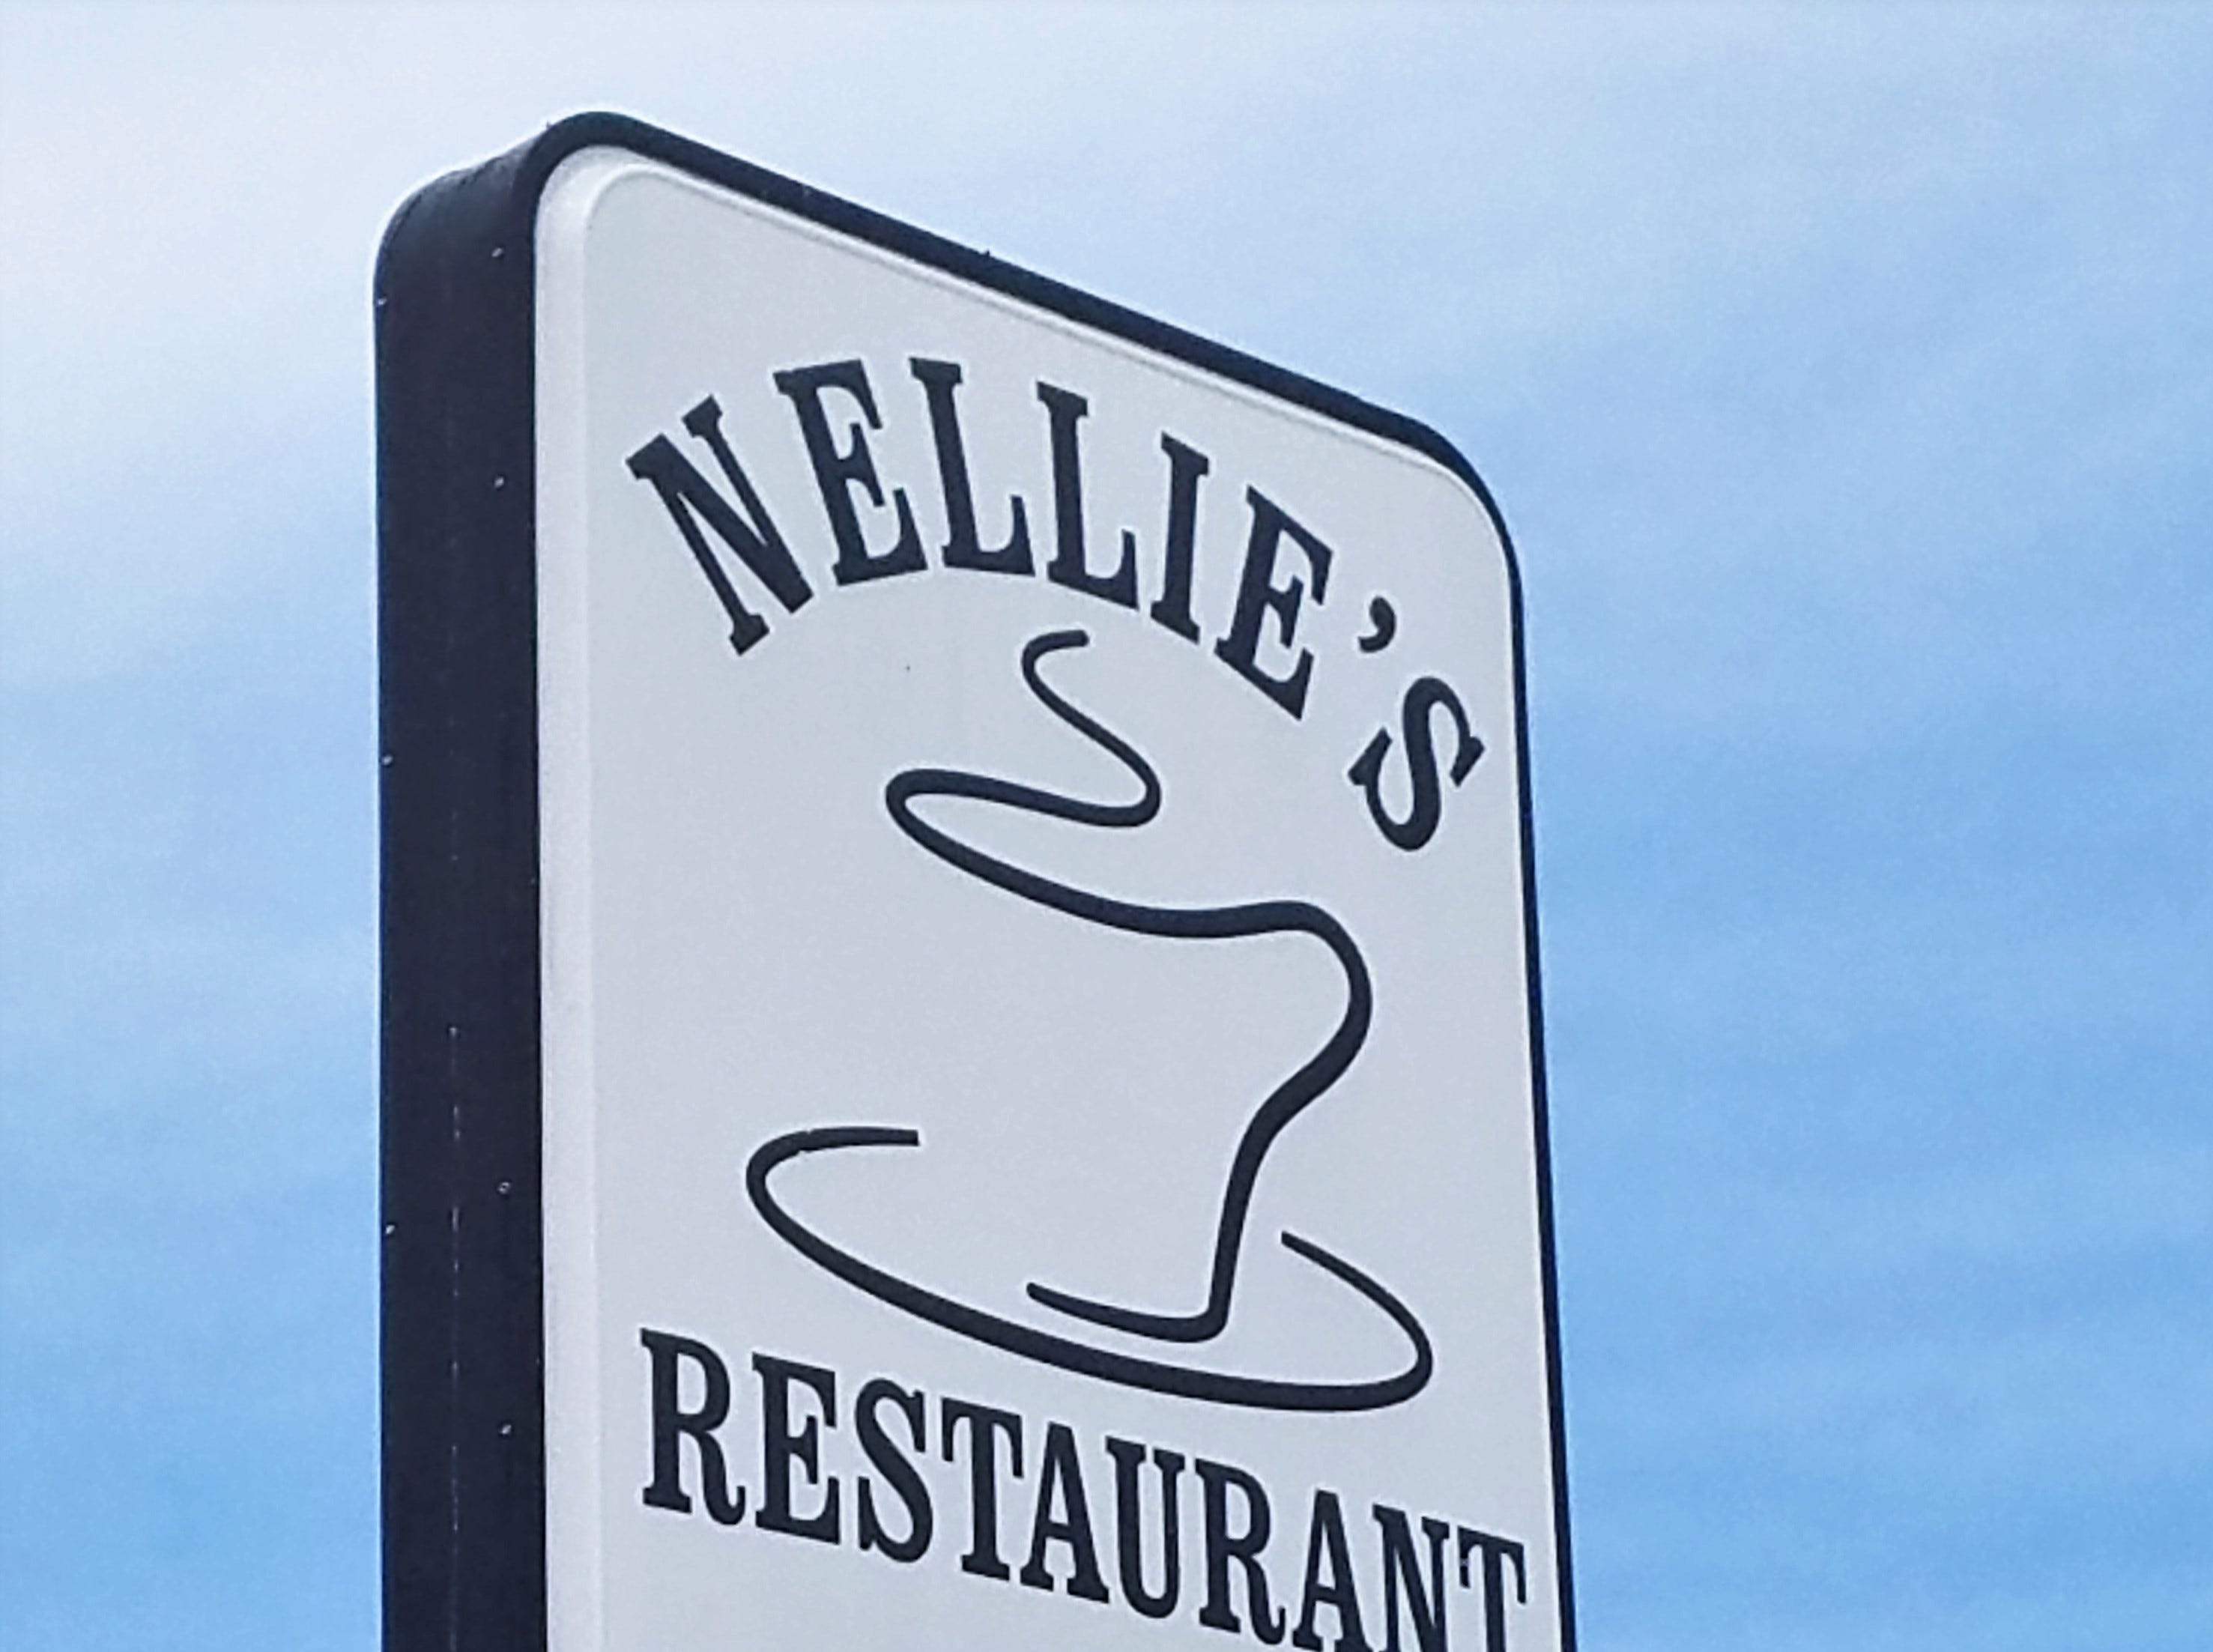 Nellie's Restaurant is located at 8566 Ruffian Ln. in Newburgh.